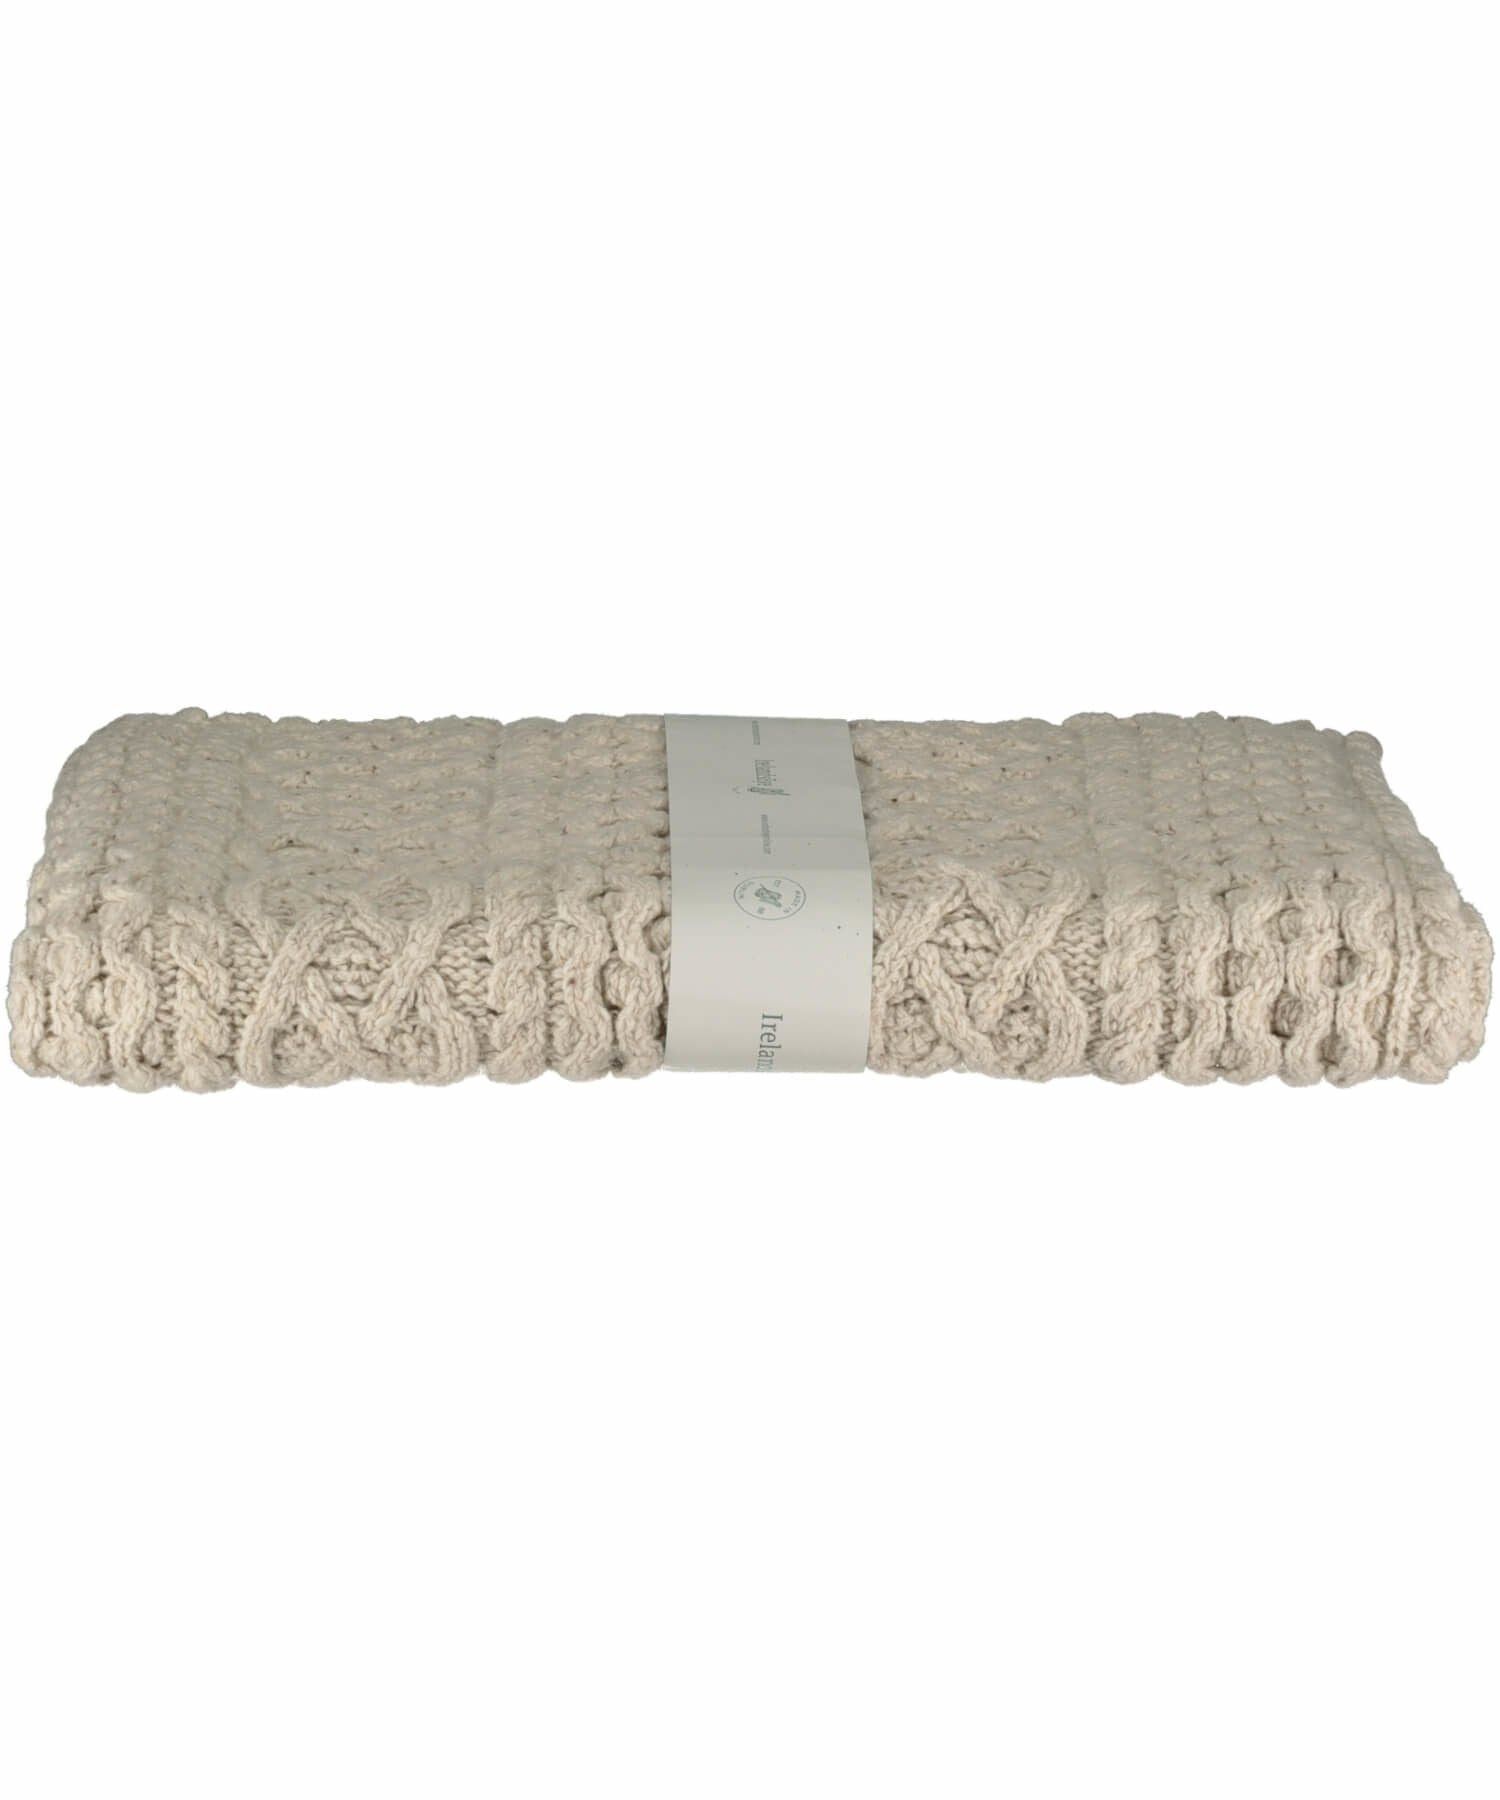 Cashmere Wool Throw - Chalkstone - [Irelands Eye] - Throws & Cushions - Irish Gifts